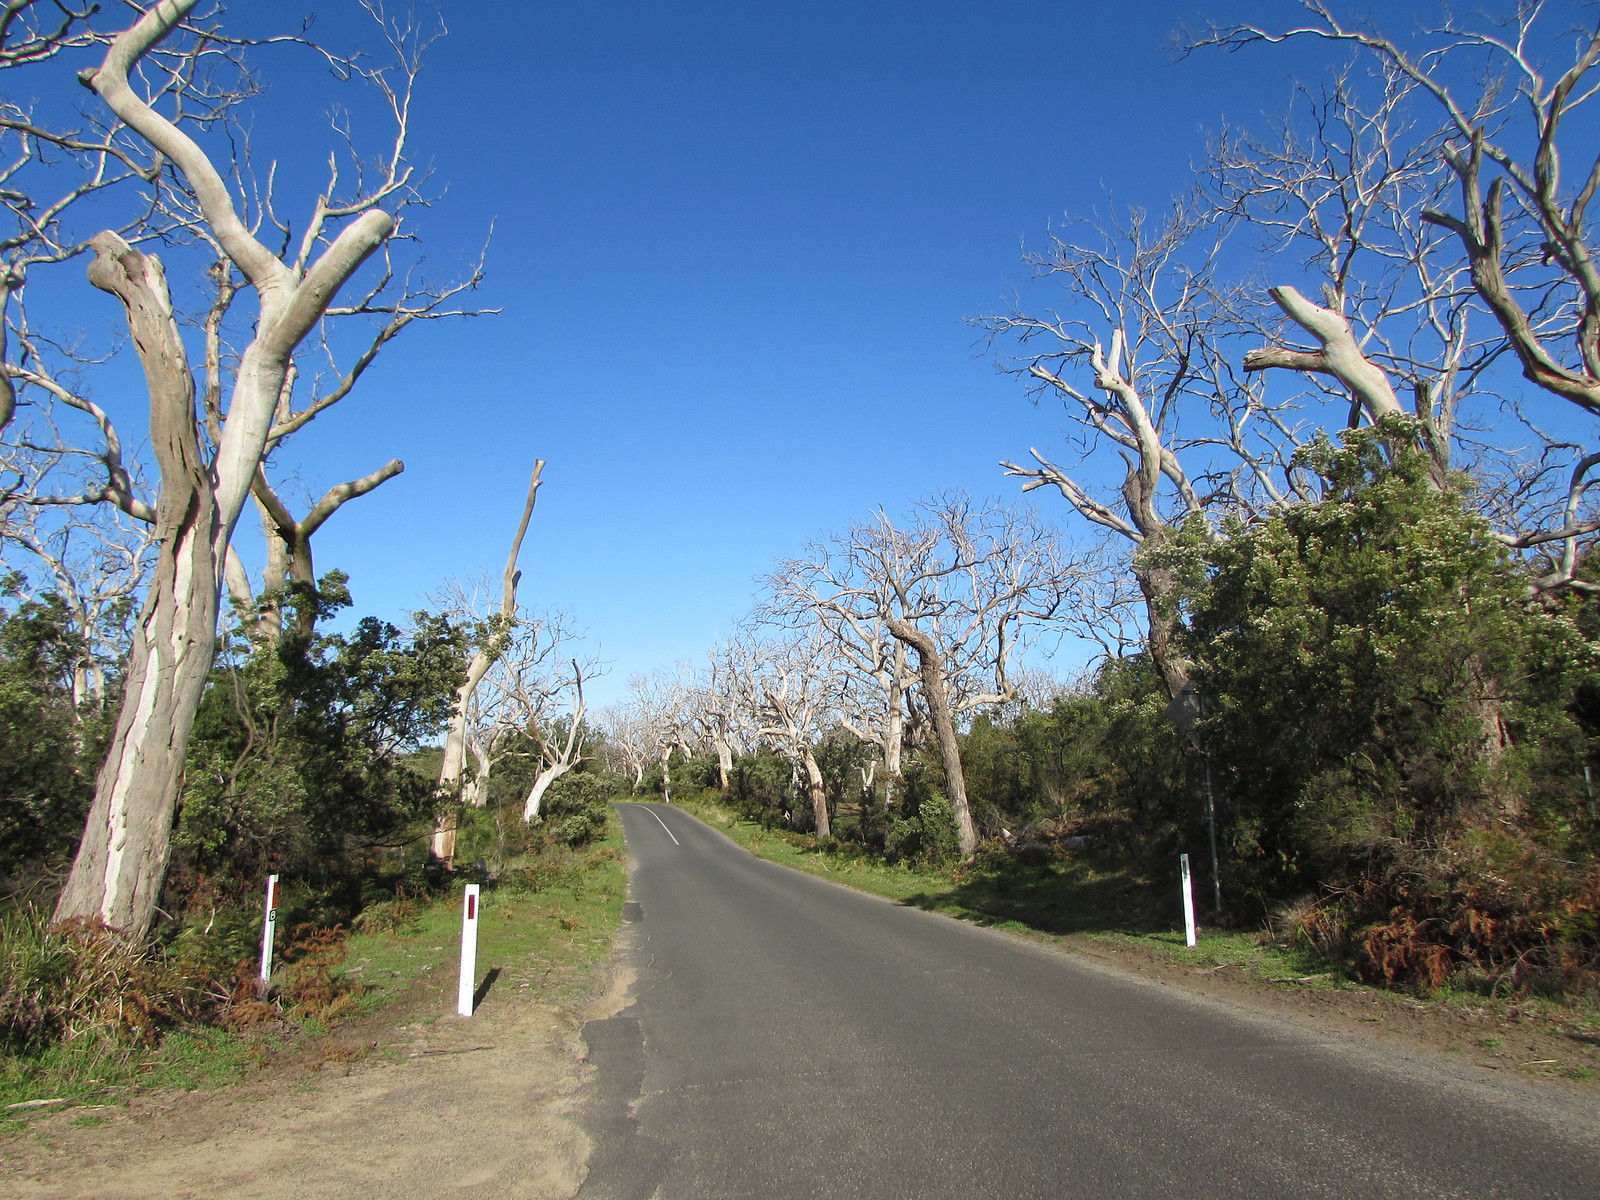 In Cape Otway, the scenery reminded me of the drive along the Northern Rim of the Grand Canyon a few years back